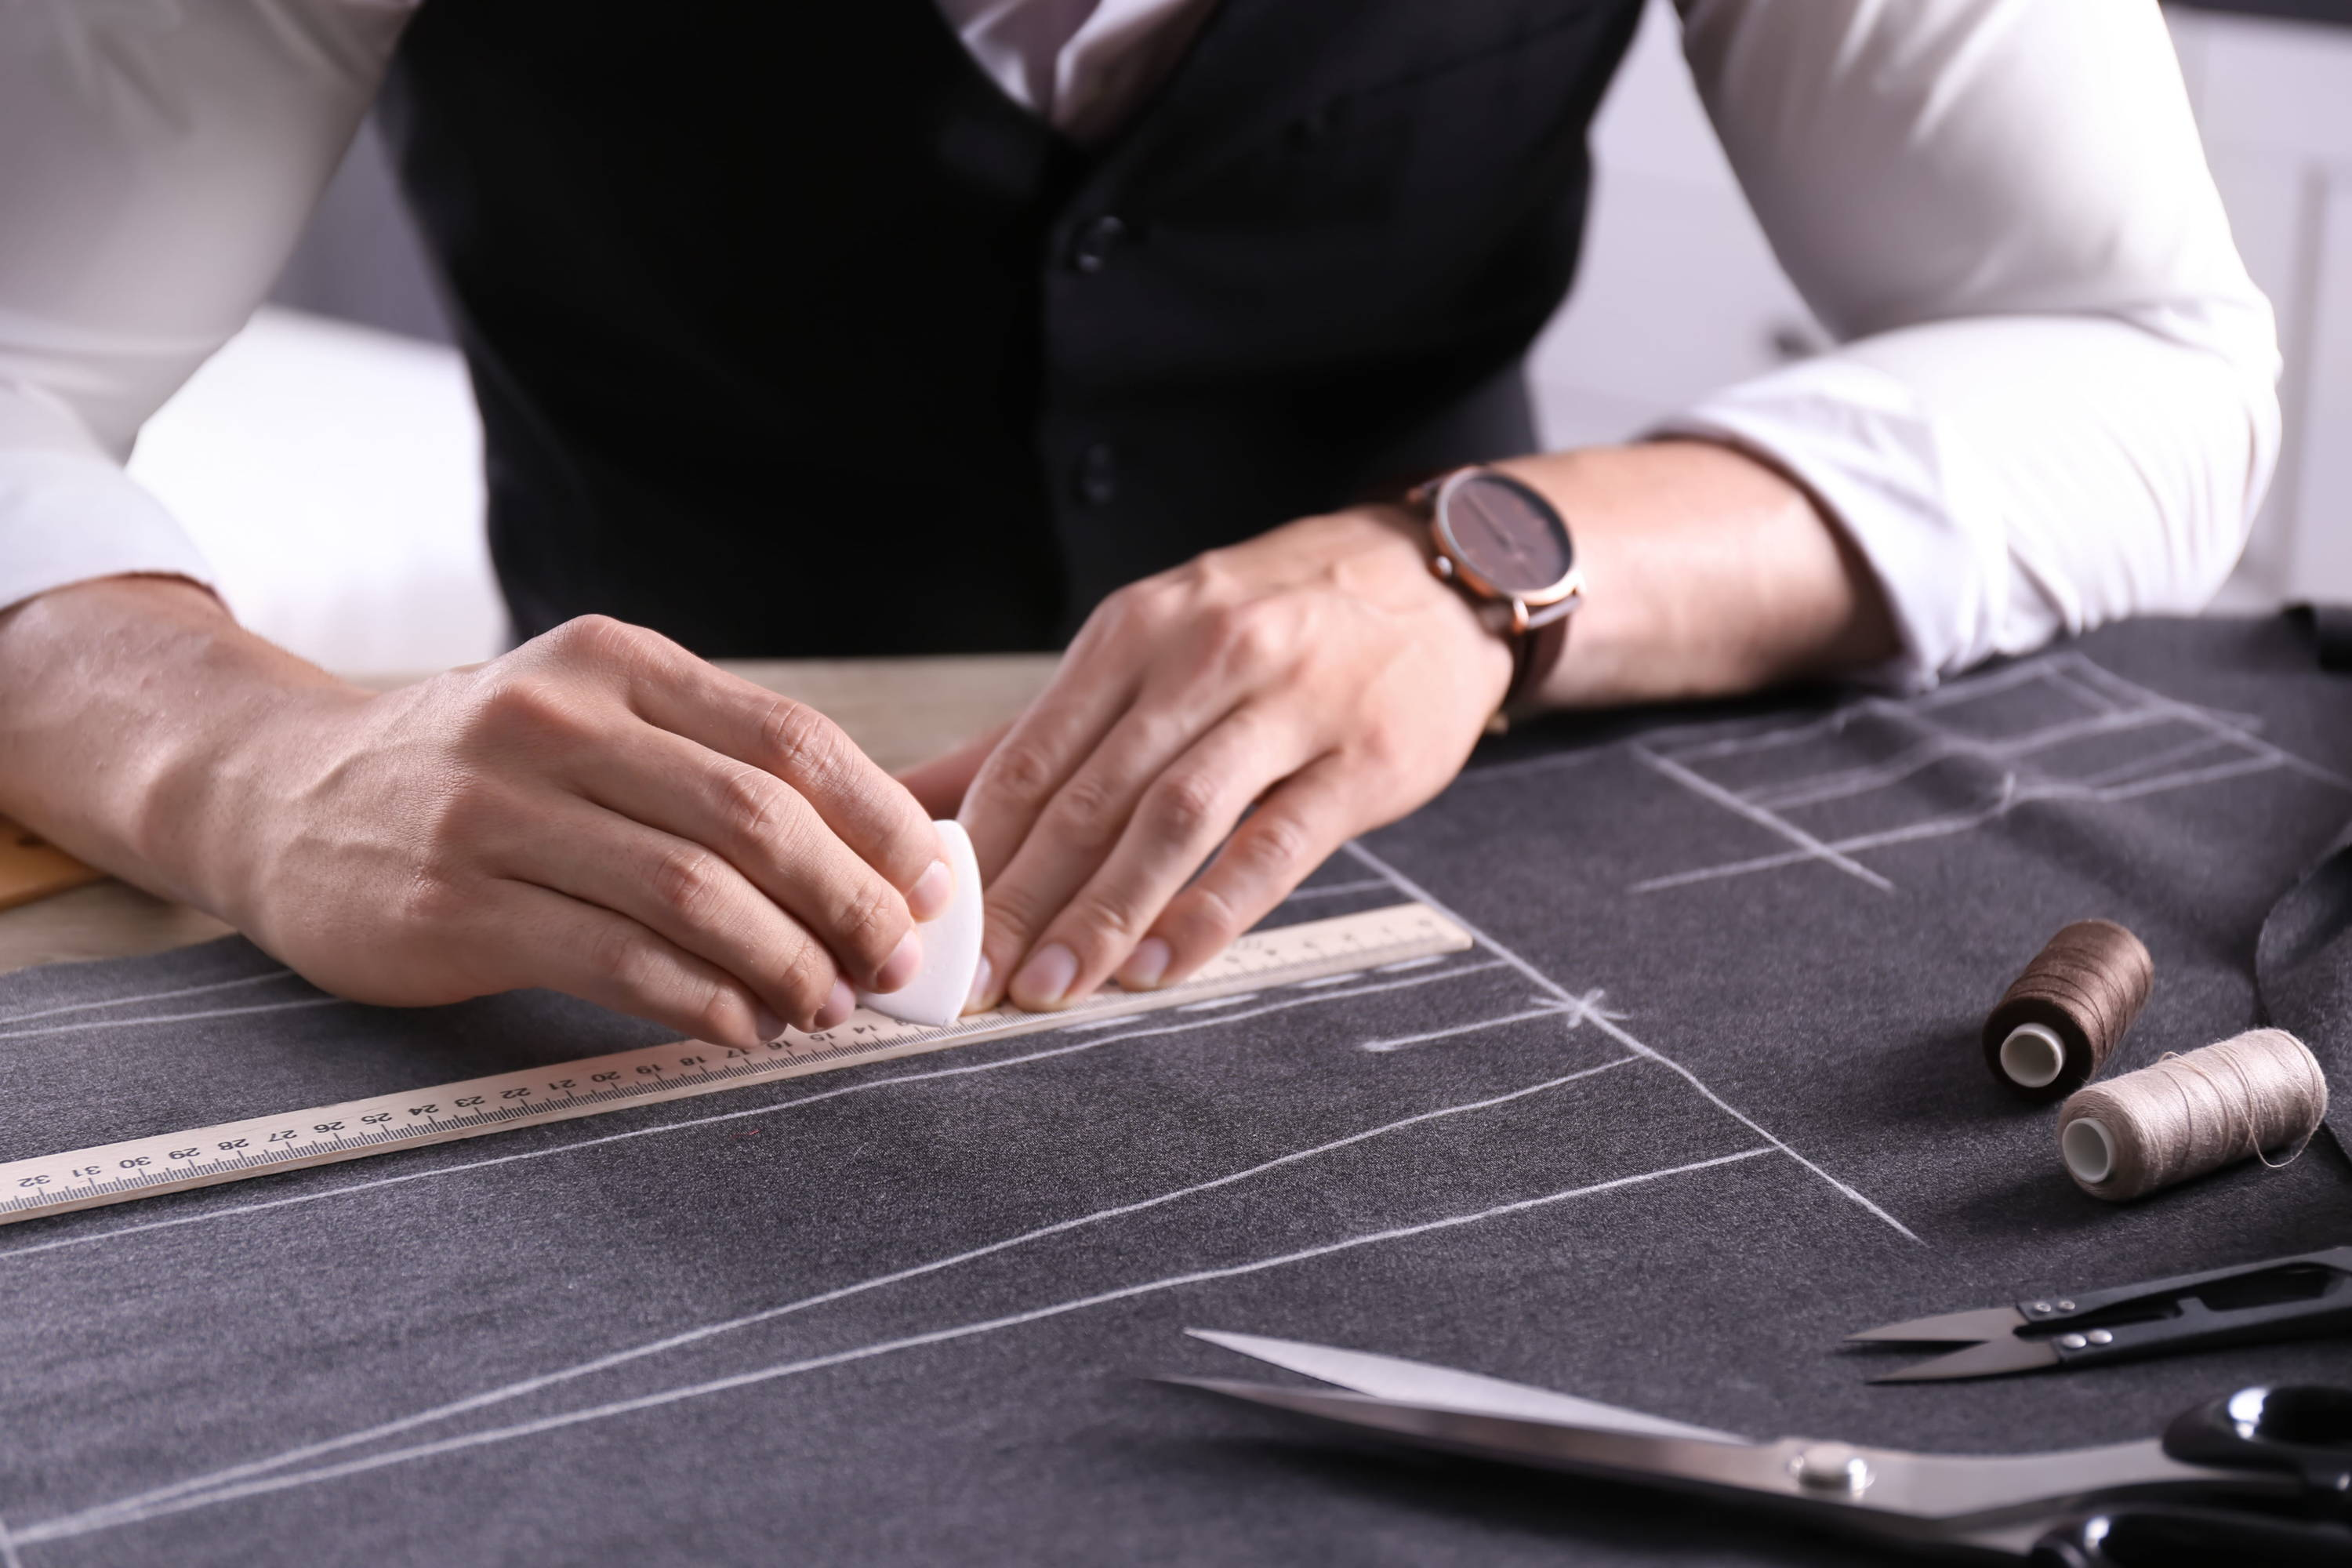 Bespoke tailor carefully chalks out the pattern for a bespoke suit before cutting the suiting fabric